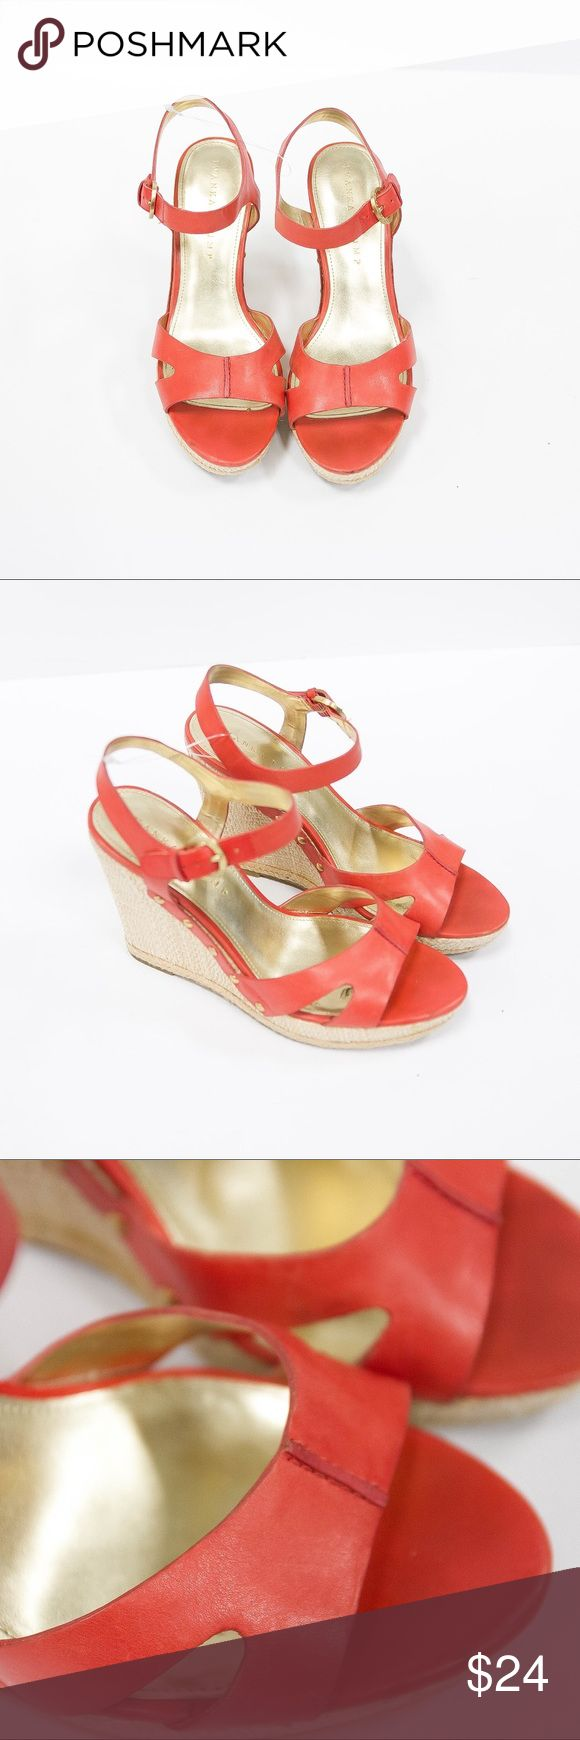 Ivanka Trum Wedges Something to match a colorful sundress ☀️ for the summer ?Salmon Ivanka Trum Wedges 🔥 Ivanka Trump Shoes Wedges